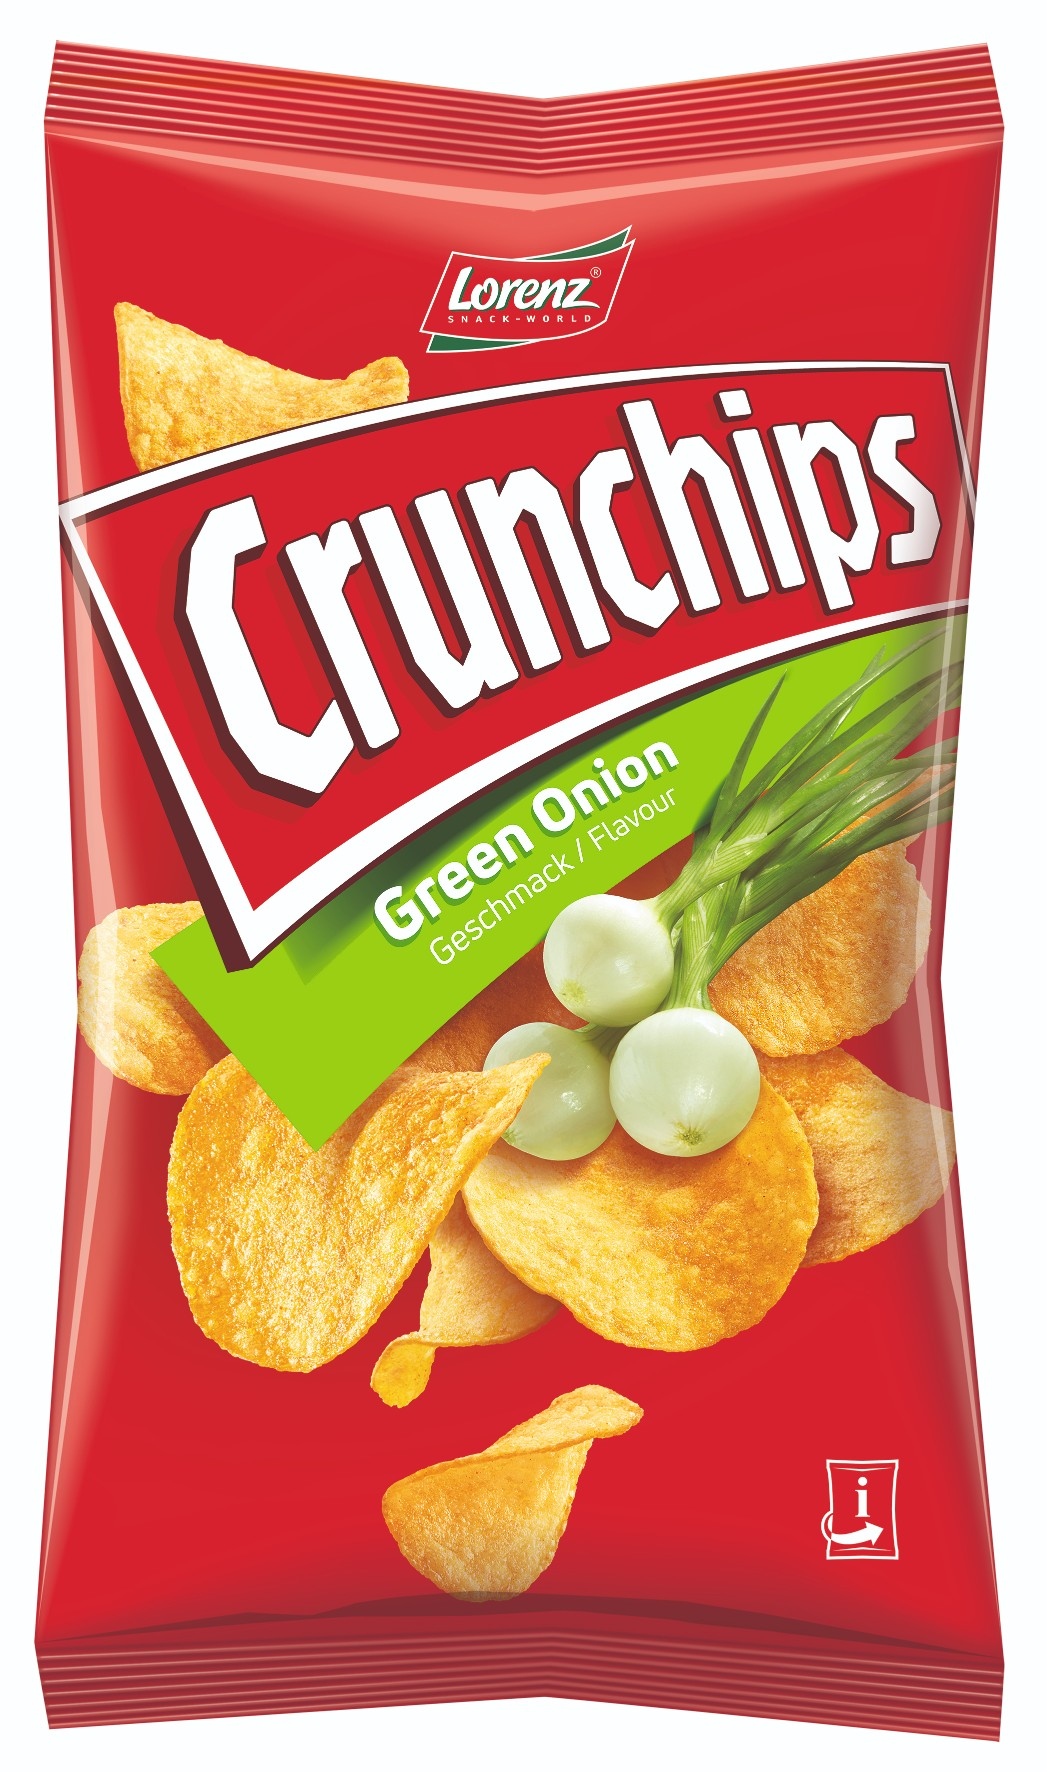 Lorenz Crunchips Green Onion 75g